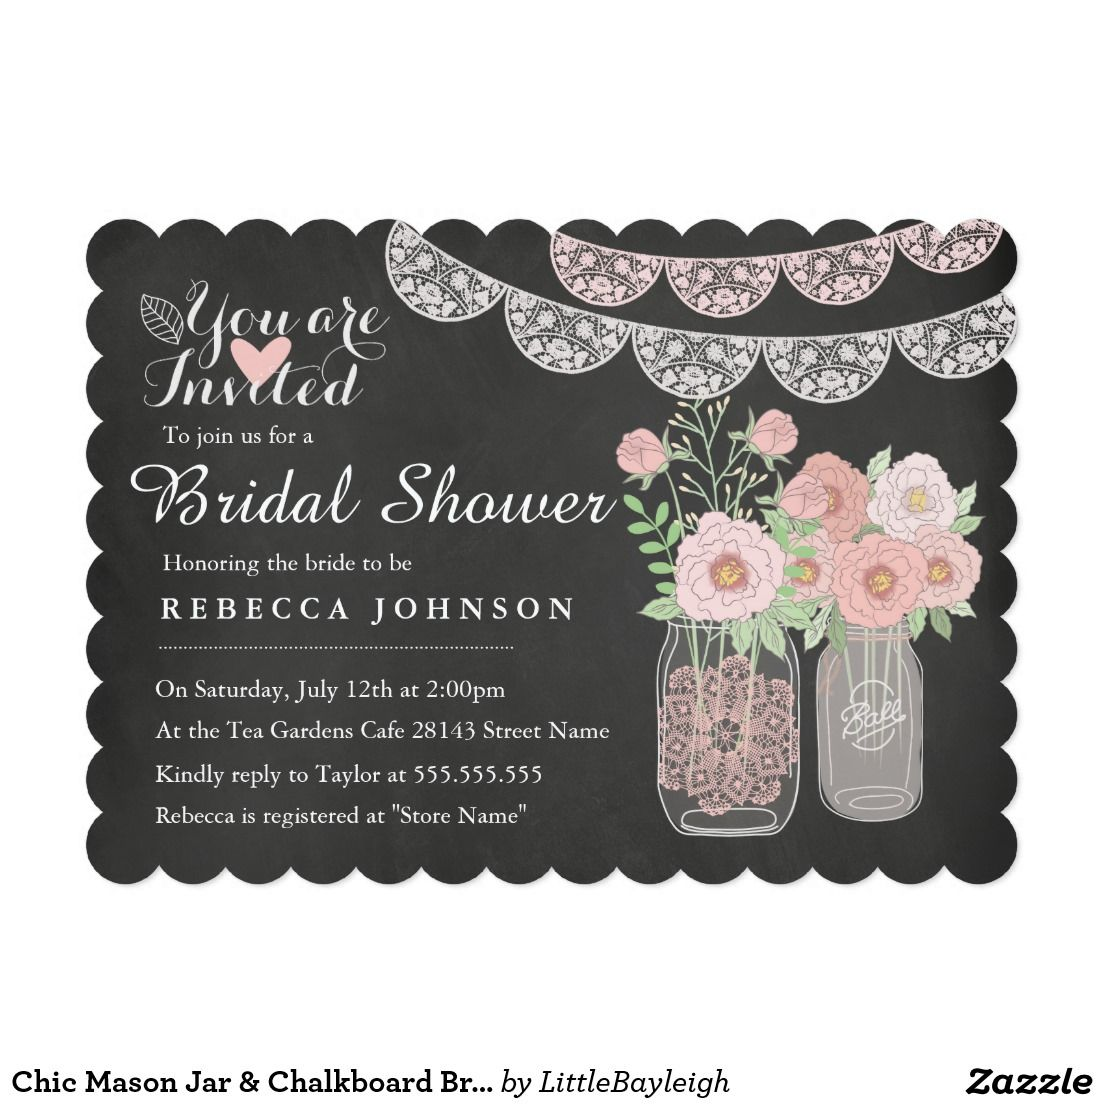 Chic mason jar chalkboard bridal shower invite elegant chalkboard elegant chalkboard bridal shower invitation templates classy bridal shower invitations that you can order online customized for the new bride to be filmwisefo Images